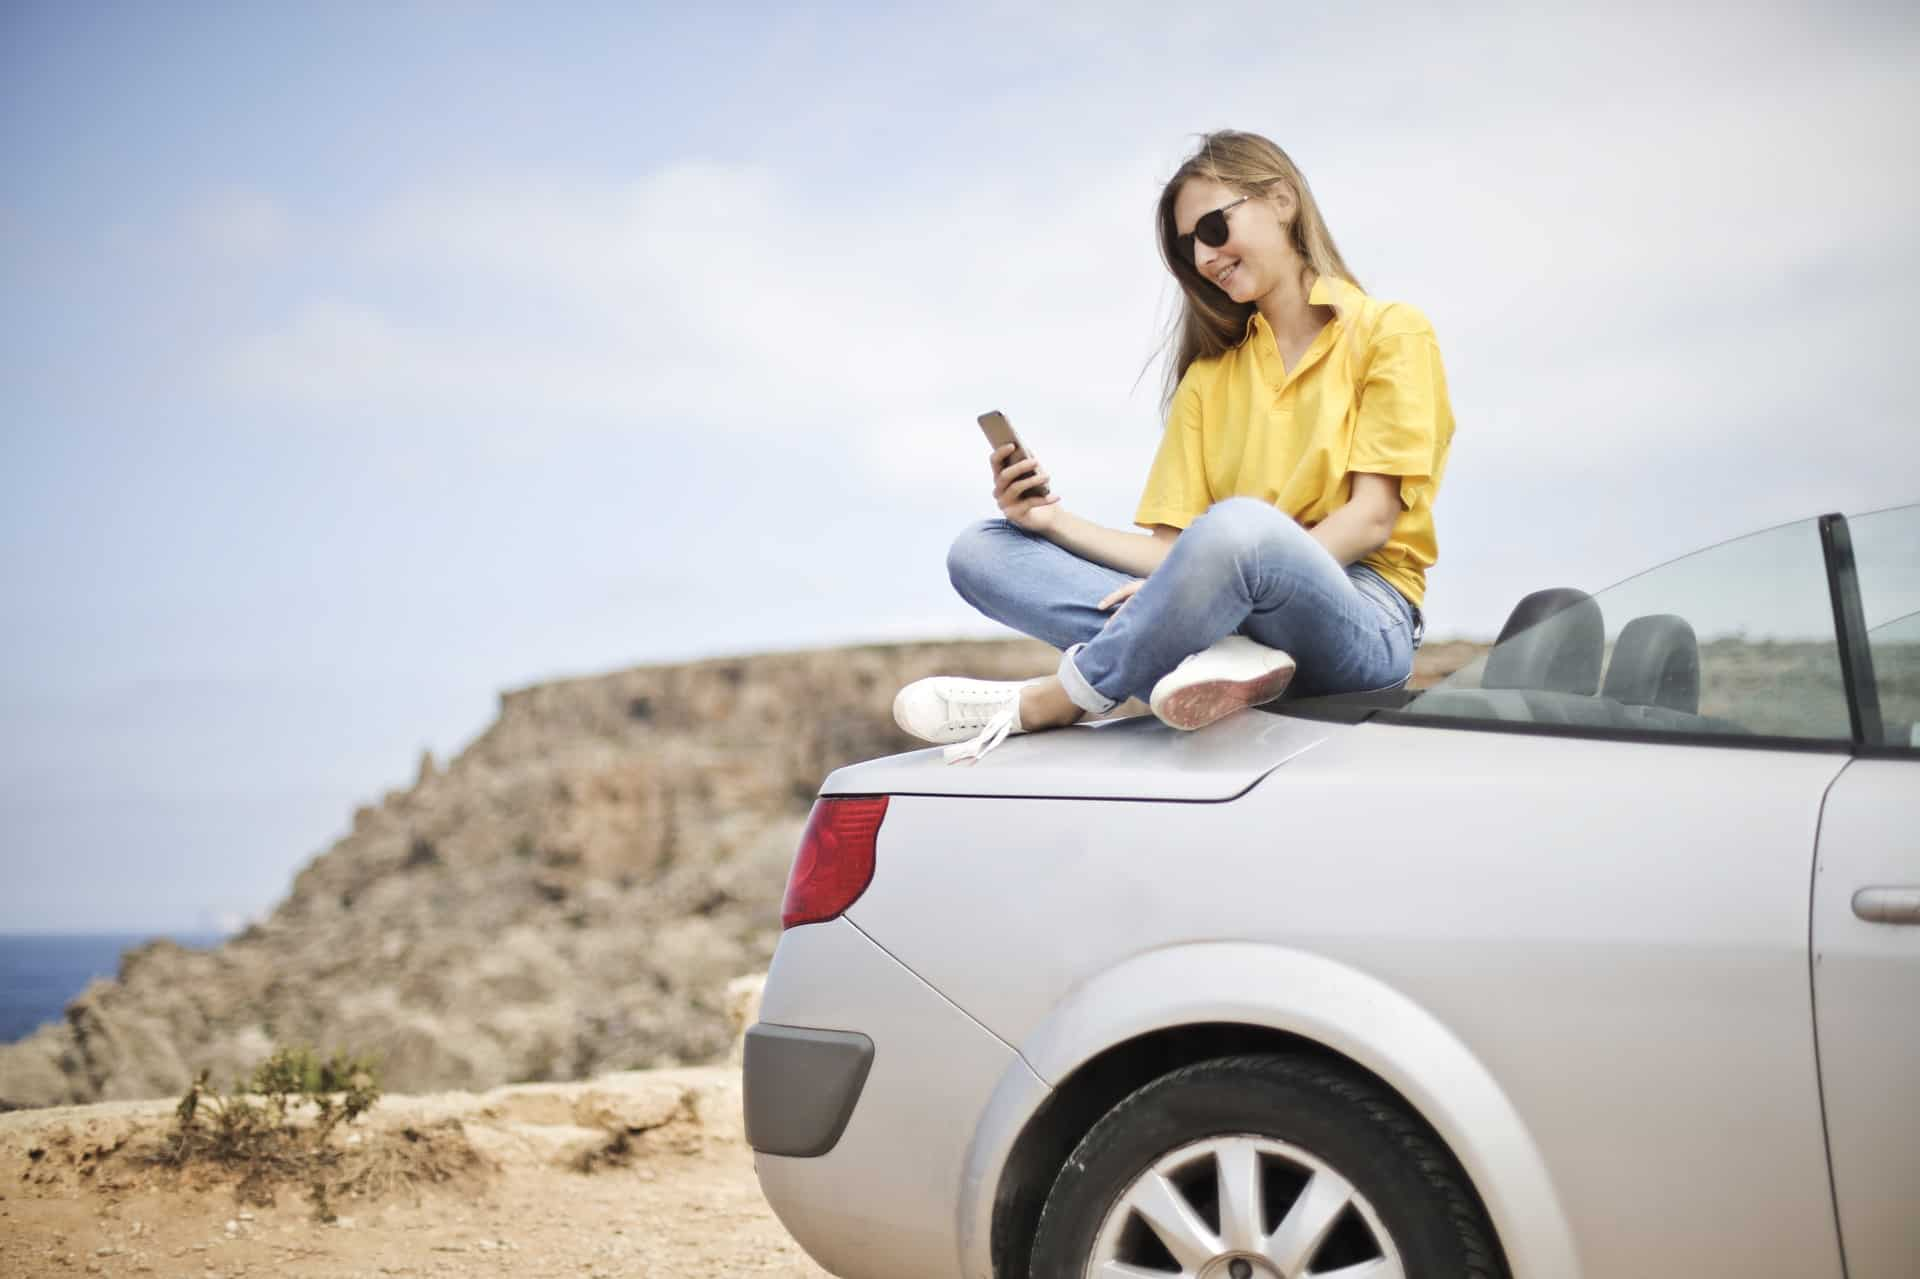 Young women wearing a yellow shirt sitting on the back of a grey convertible in the desert